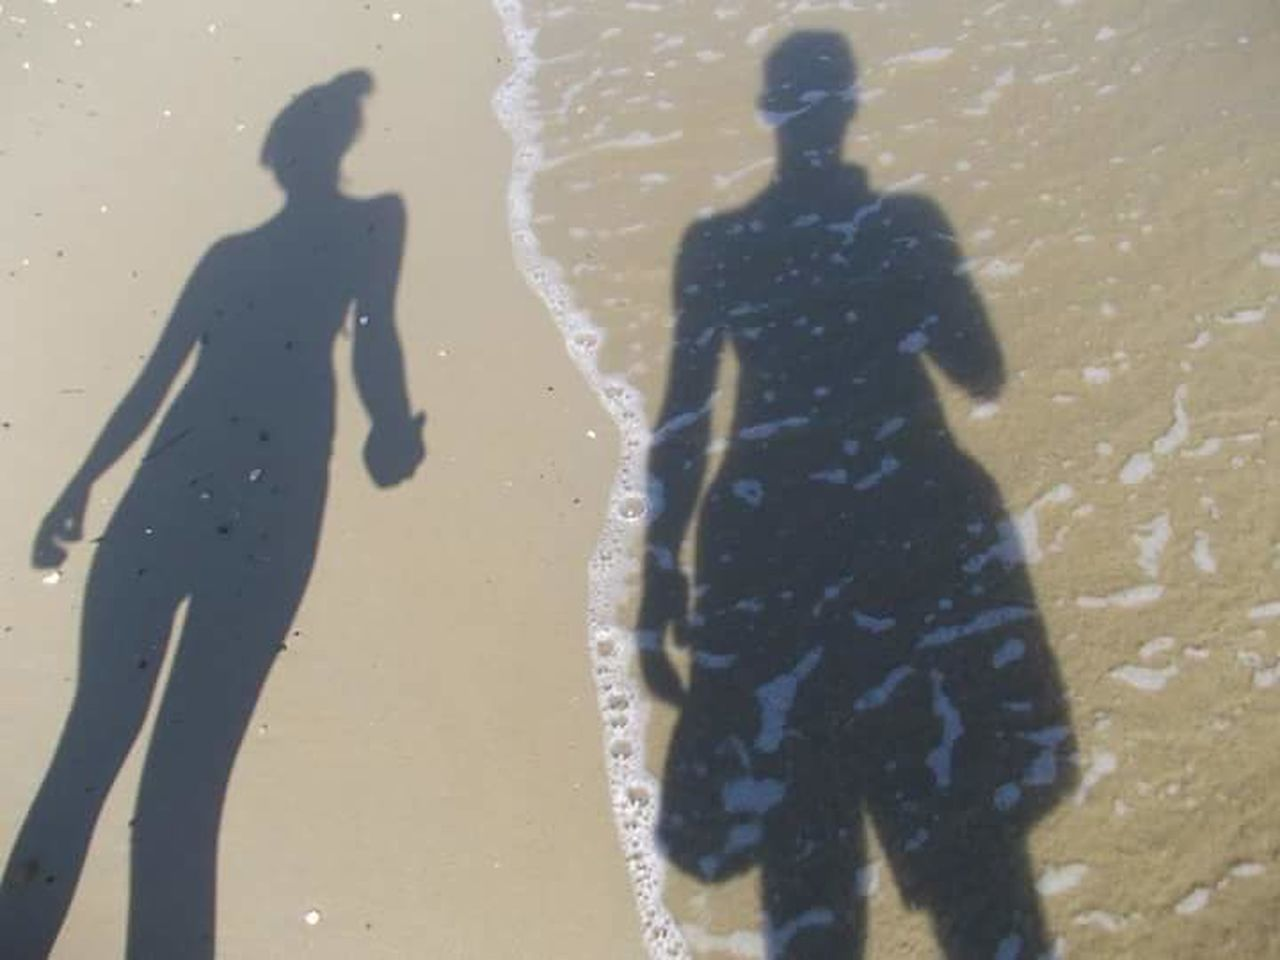 shadow, beach, focus on shadow, real people, men, sand, silhouette, lifestyles, leisure activity, outdoors, sunlight, day, standing, two people, women, water, nature, people